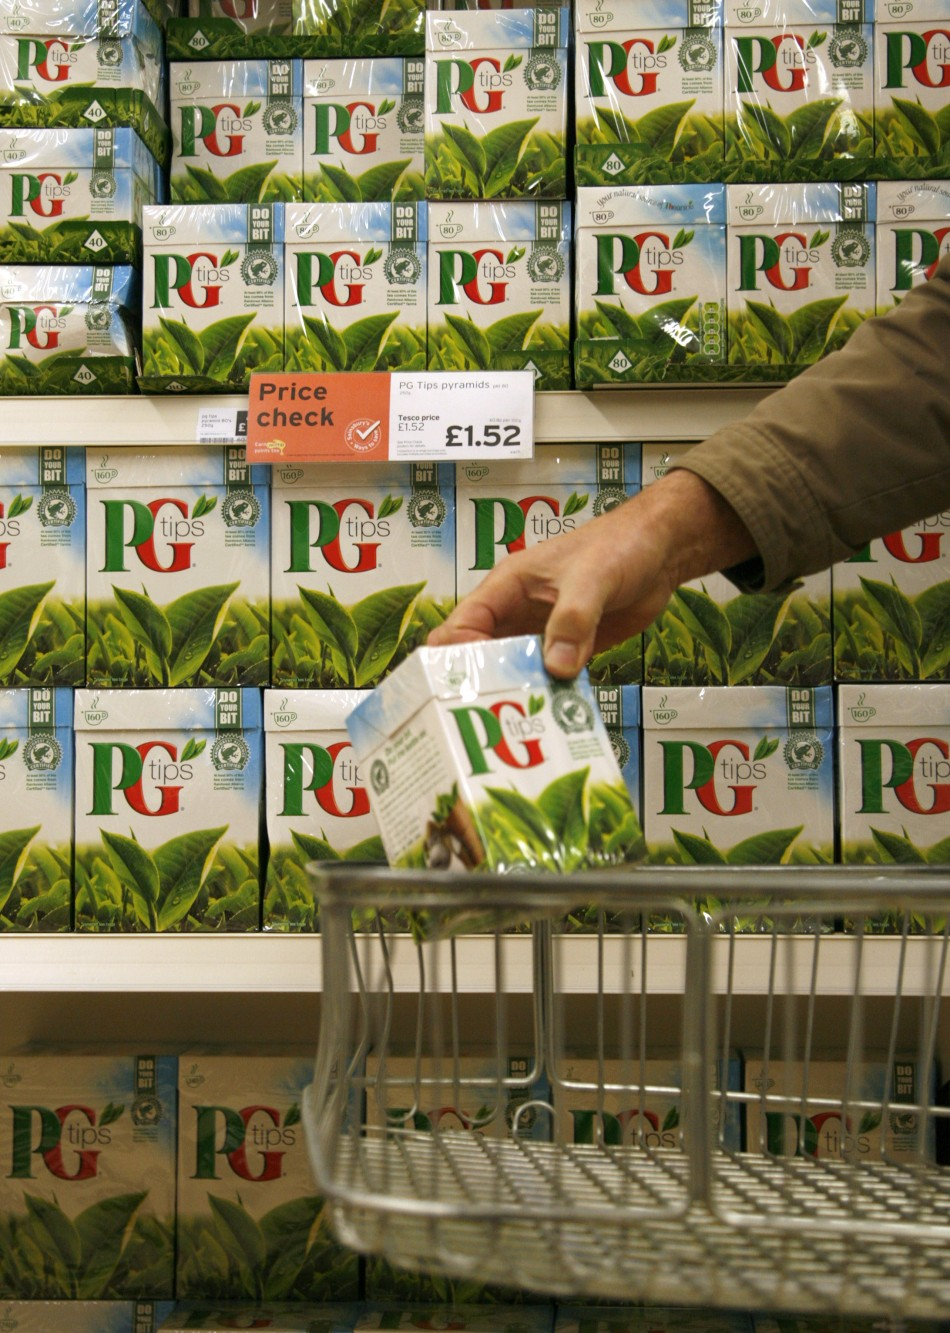 Unilever, the consumer goods conglomerate that counts Ben & Jerry's and PG Tips tea among its portfolio of brands, is weighing up where it should plough its future investments